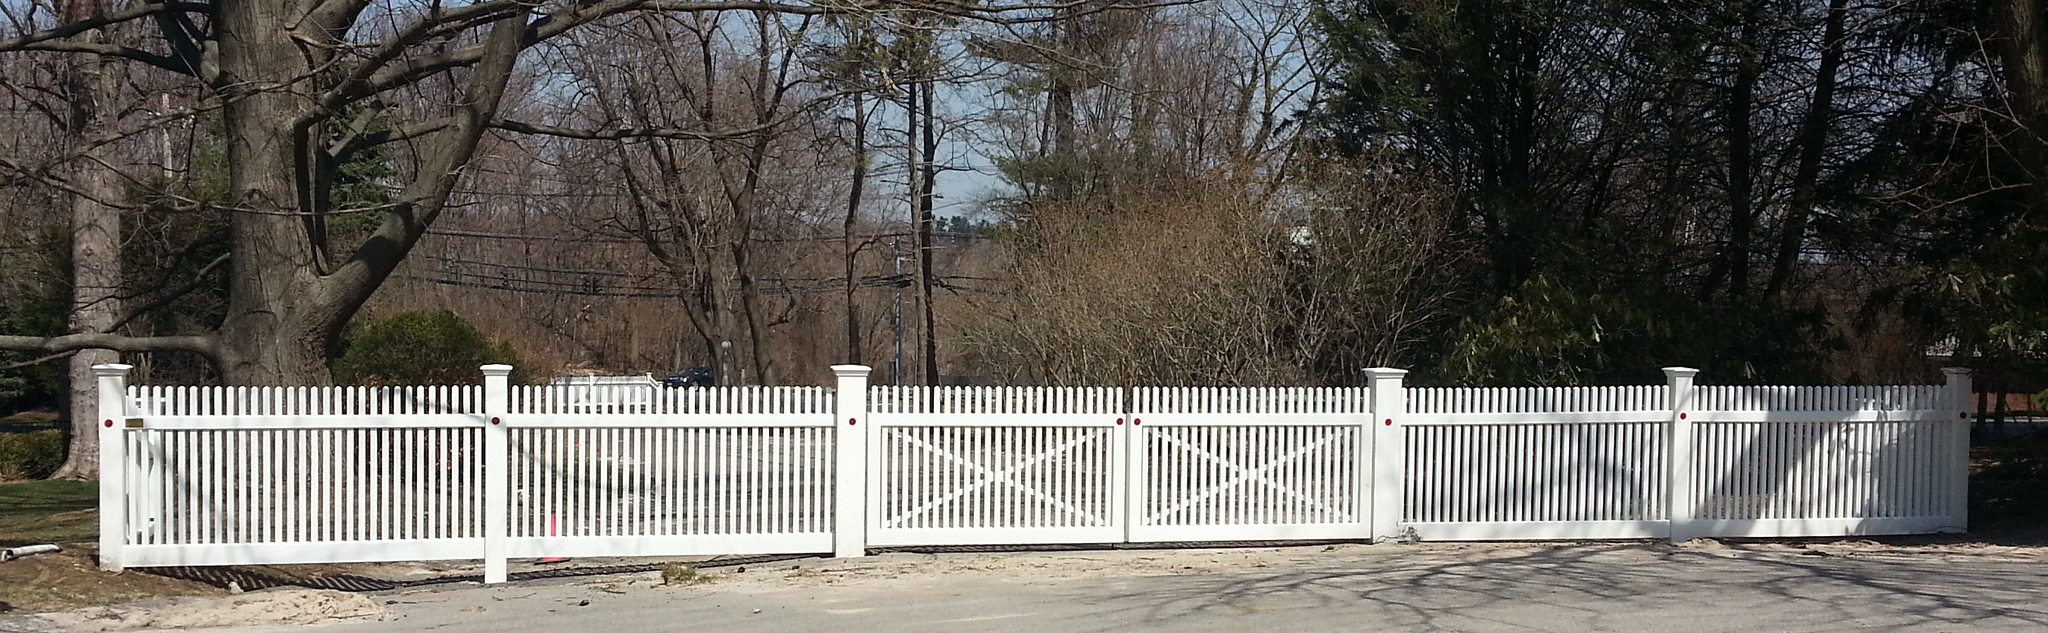 185 - Purchase NY - Country Club Fence & Gate